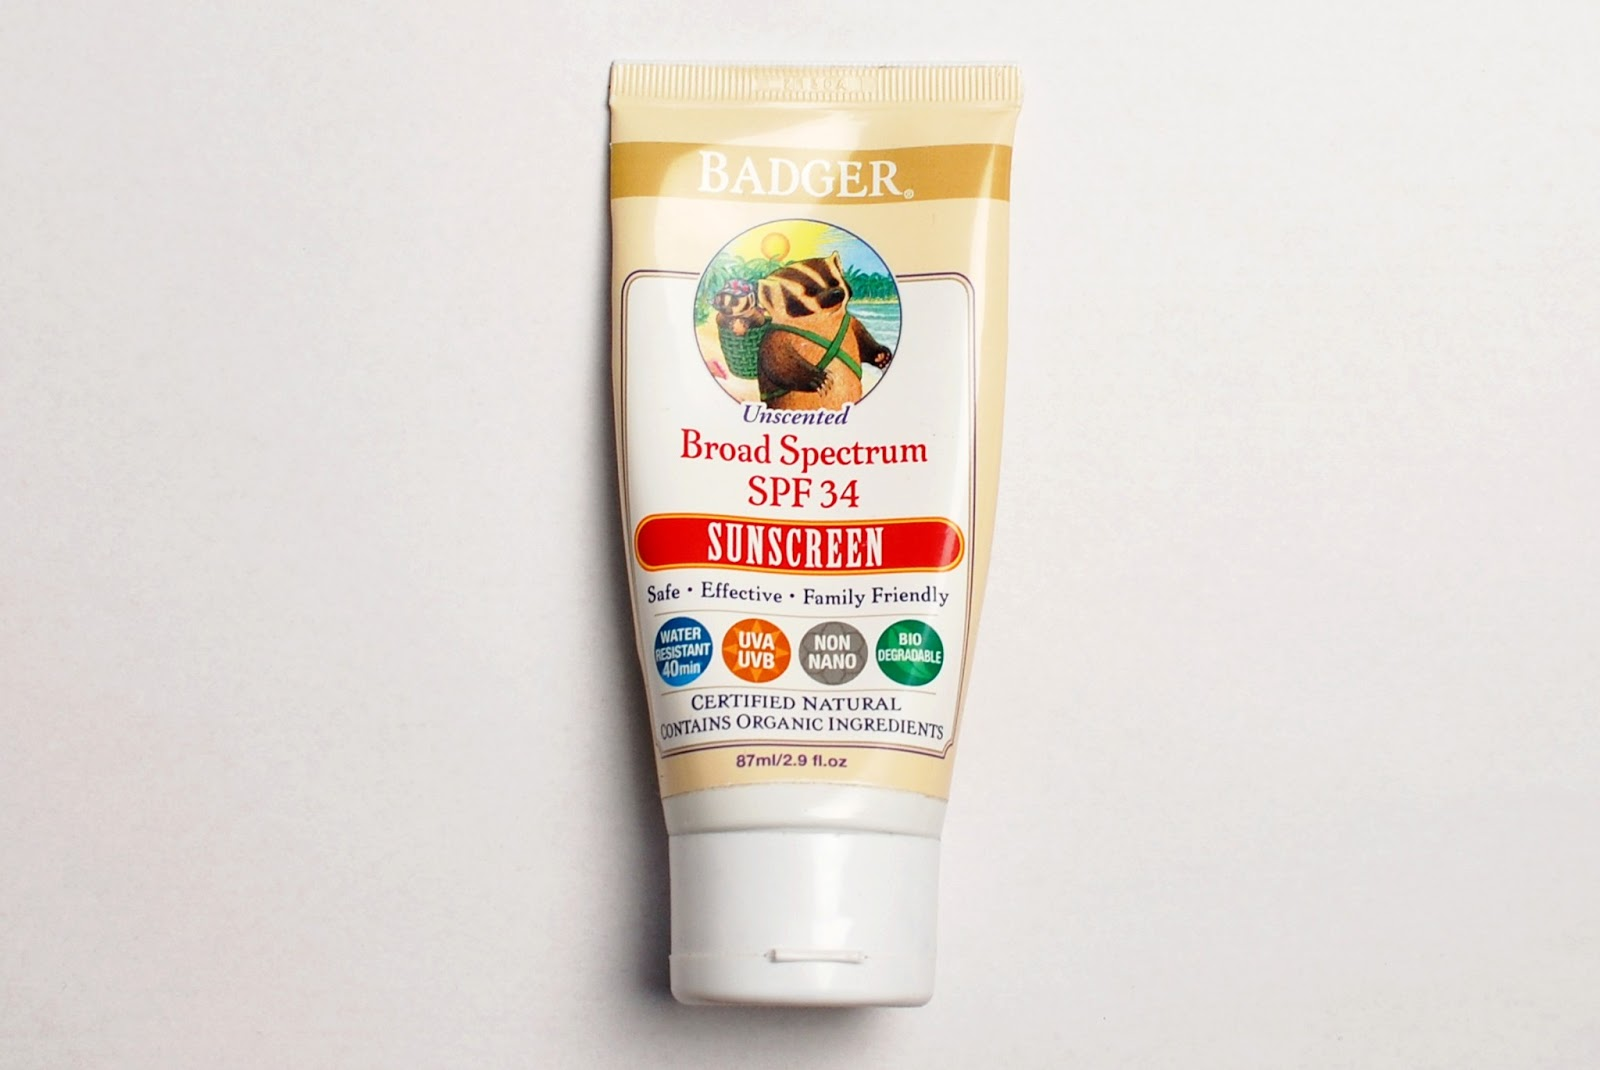 Badger Sunscreen SPF 34, Unscented